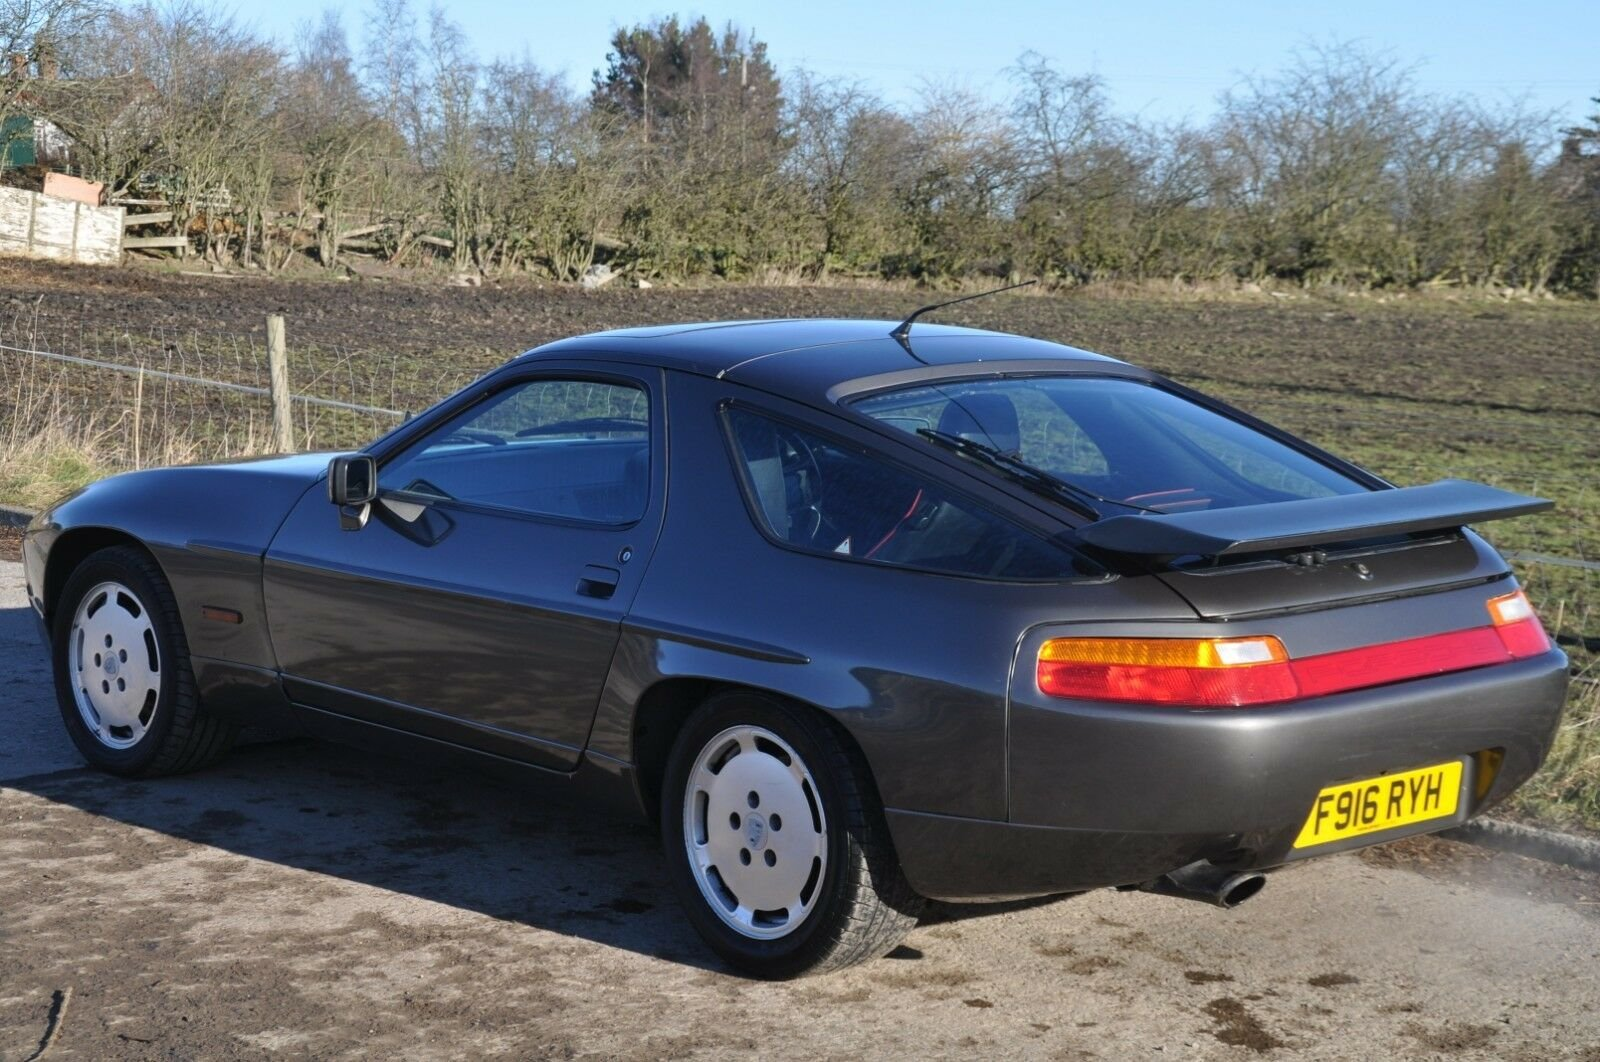 1989 PORSCHE 928S 4 / 928 S LOVELY CLASSIC CAR  For Sale (picture 1 of 6)